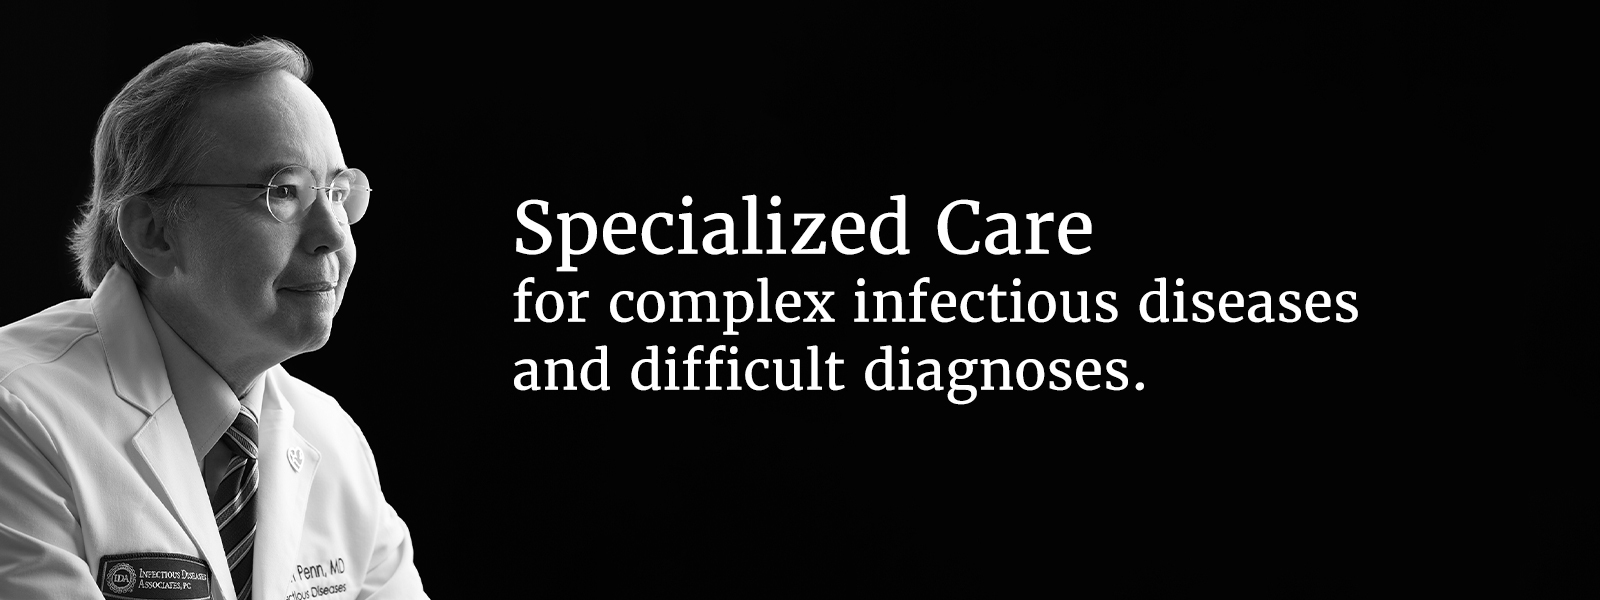 specialized care for complex infectious diseases and difficult diagnoses